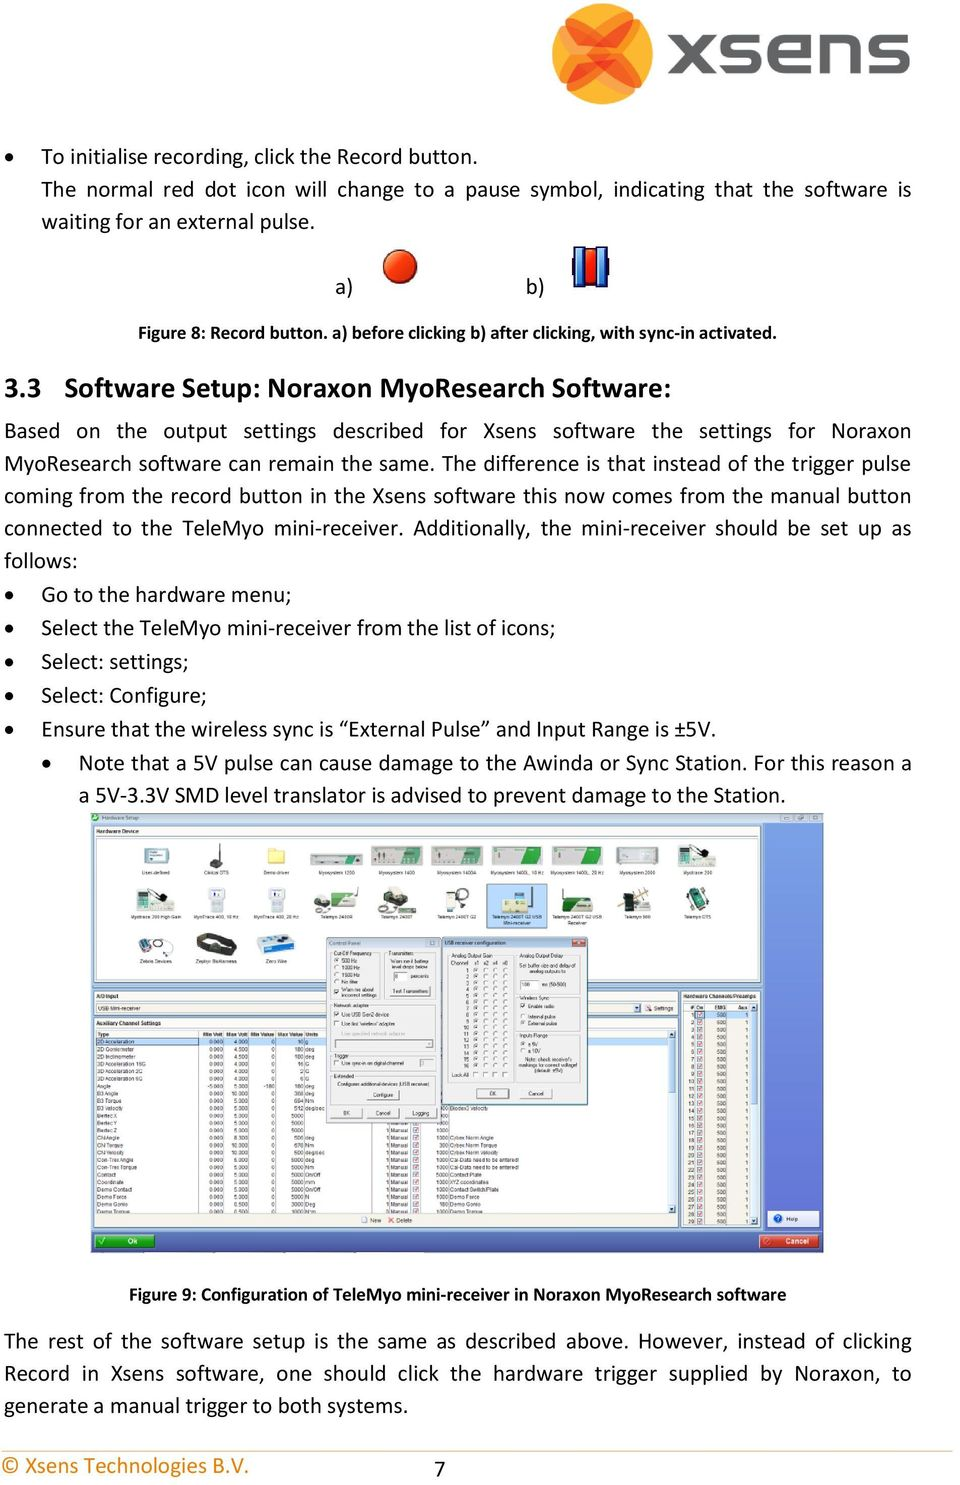 3 Software Setup: Noraxon MyoResearch Software: Based on the output settings described for Xsens software the settings for Noraxon MyoResearch software can remain the same.